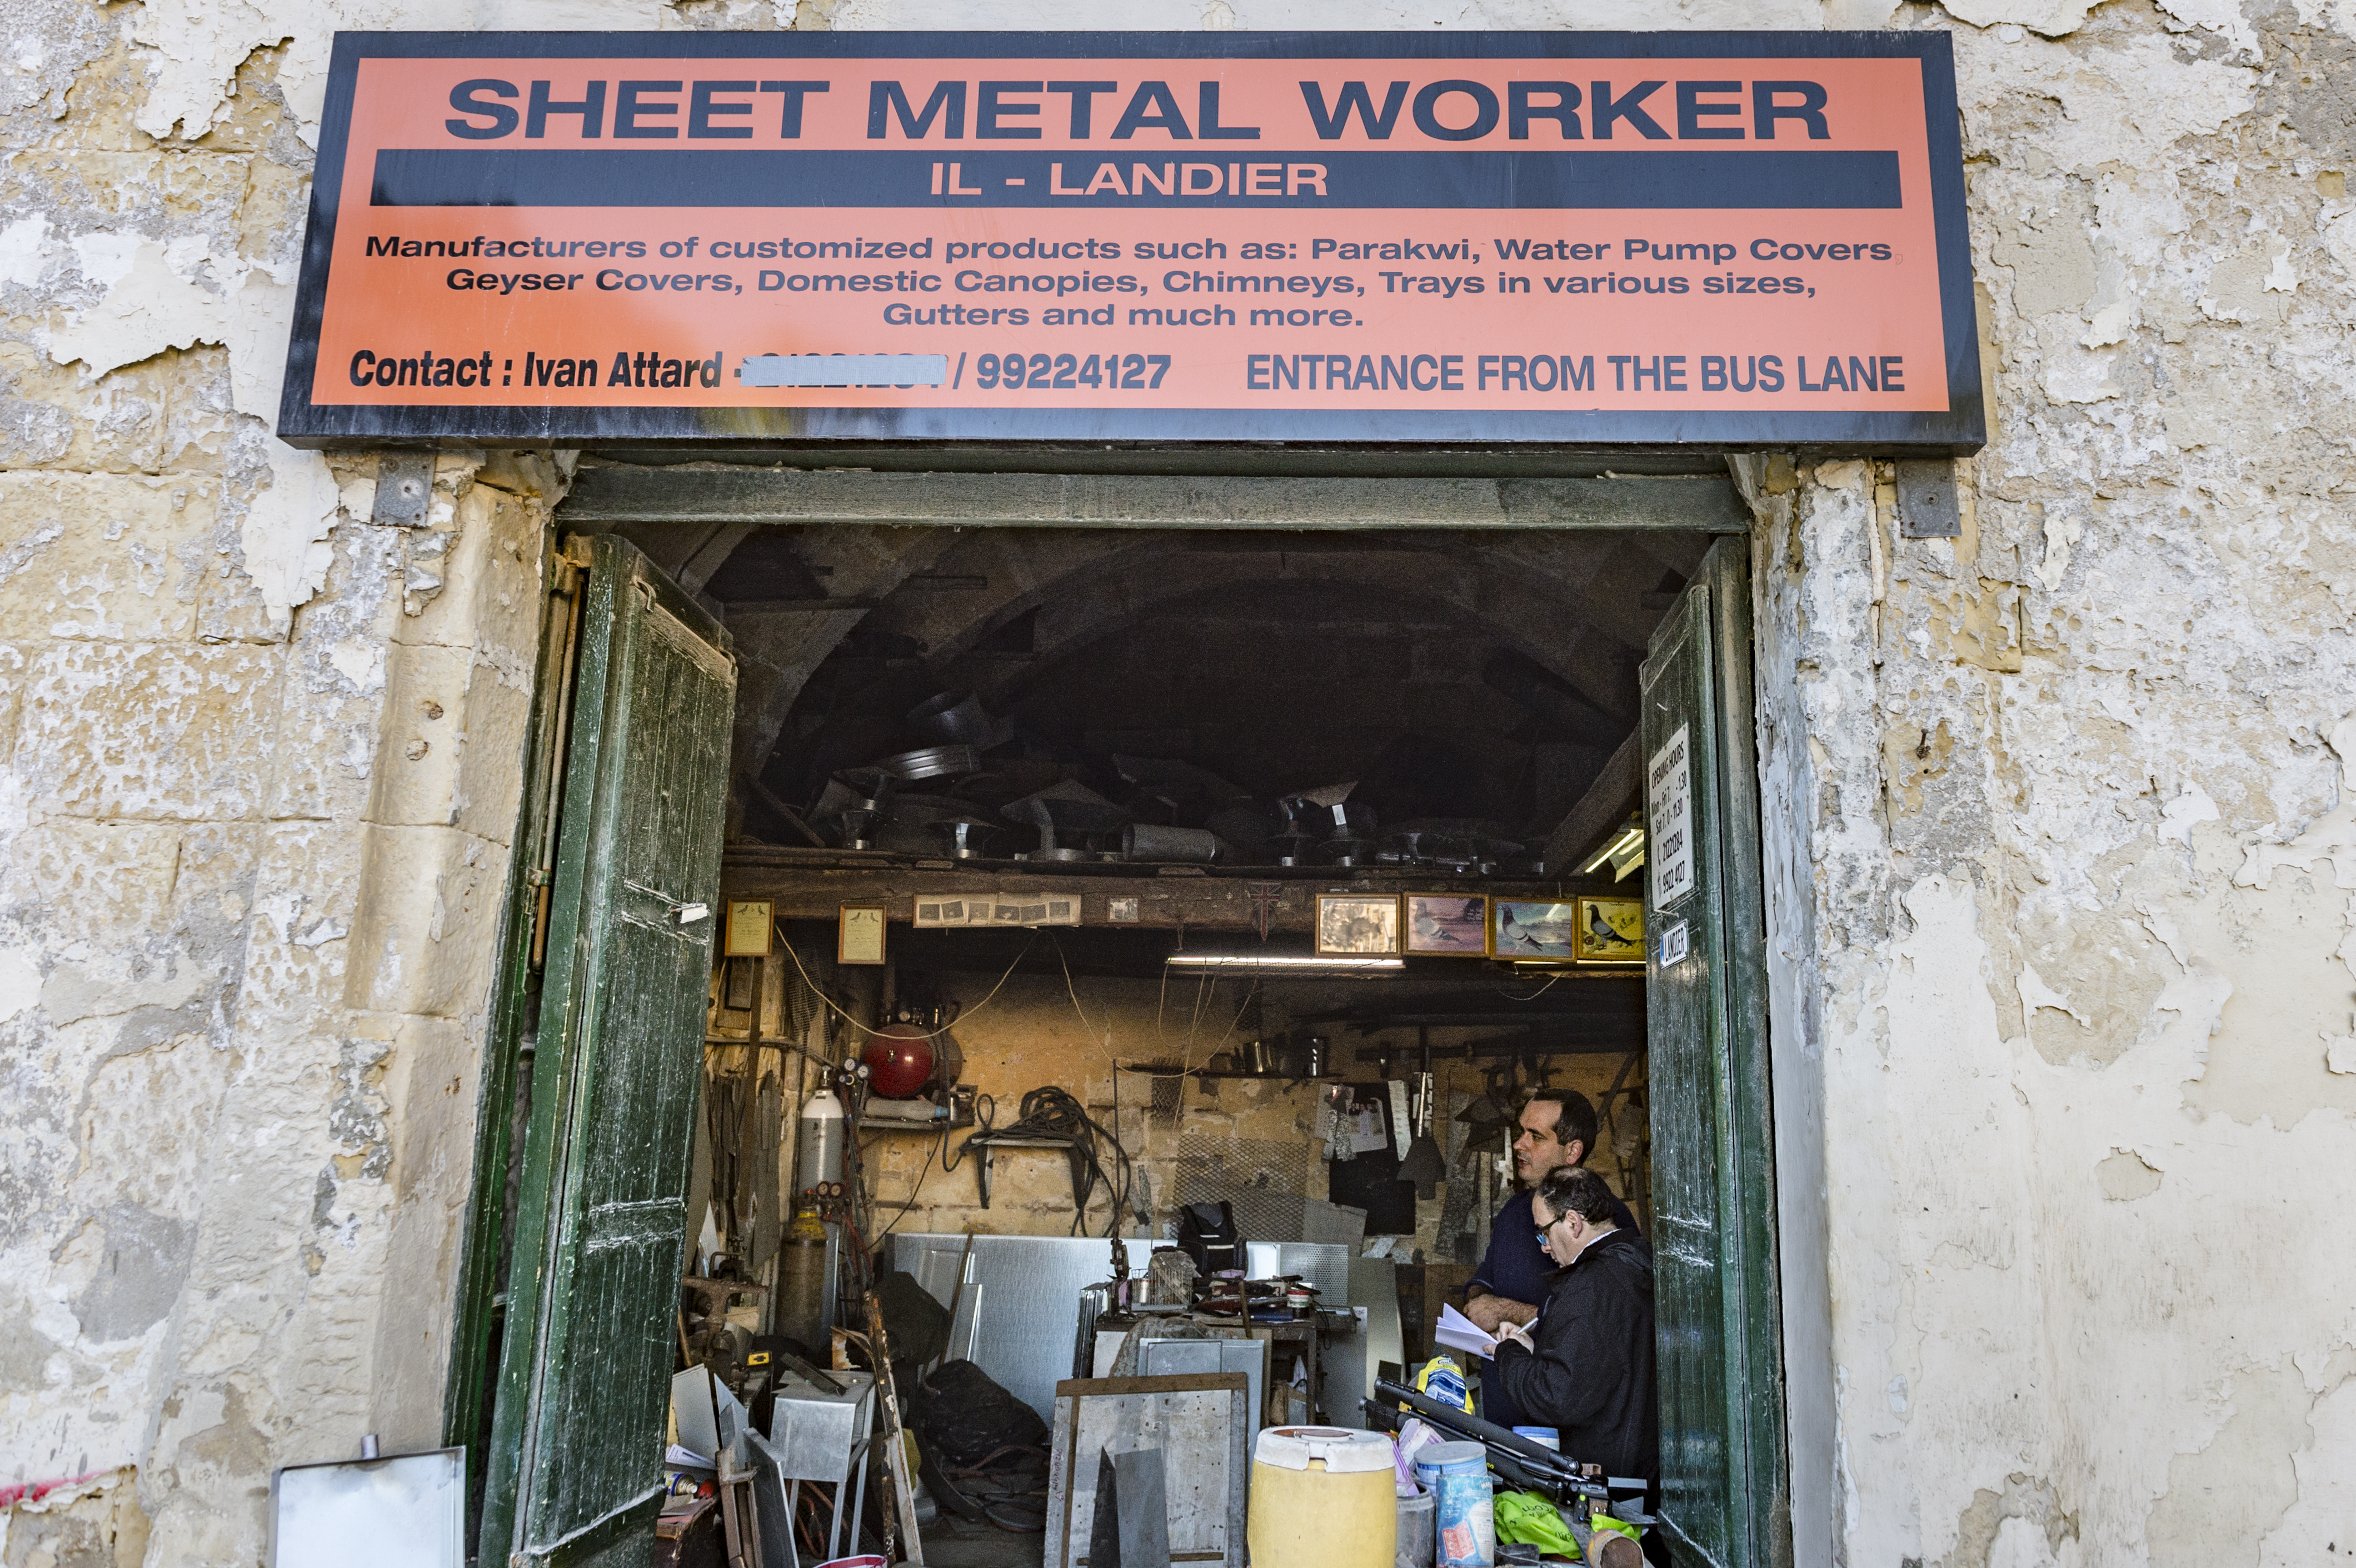 The Third Generation - Interview with Ivan Attard, Sheet Metal Worker